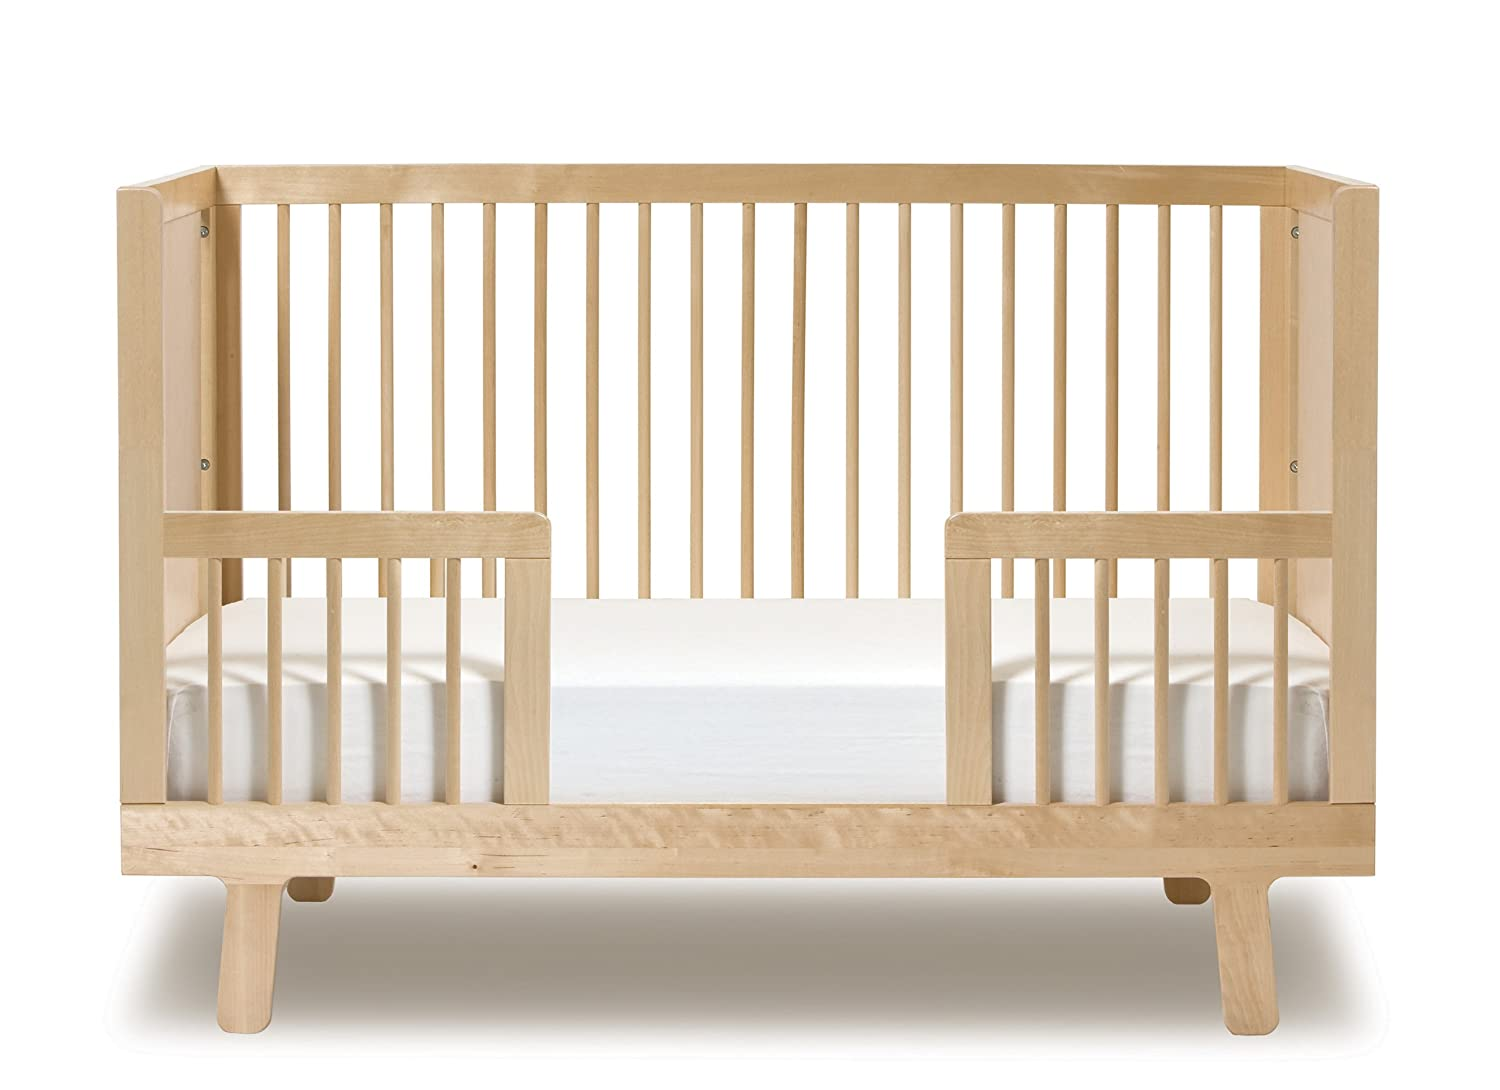 amazoncom  oeuf sparrow toddler bed conversion kit birch  - amazoncom  oeuf sparrow toddler bed conversion kit birch  nursery bedrails  baby